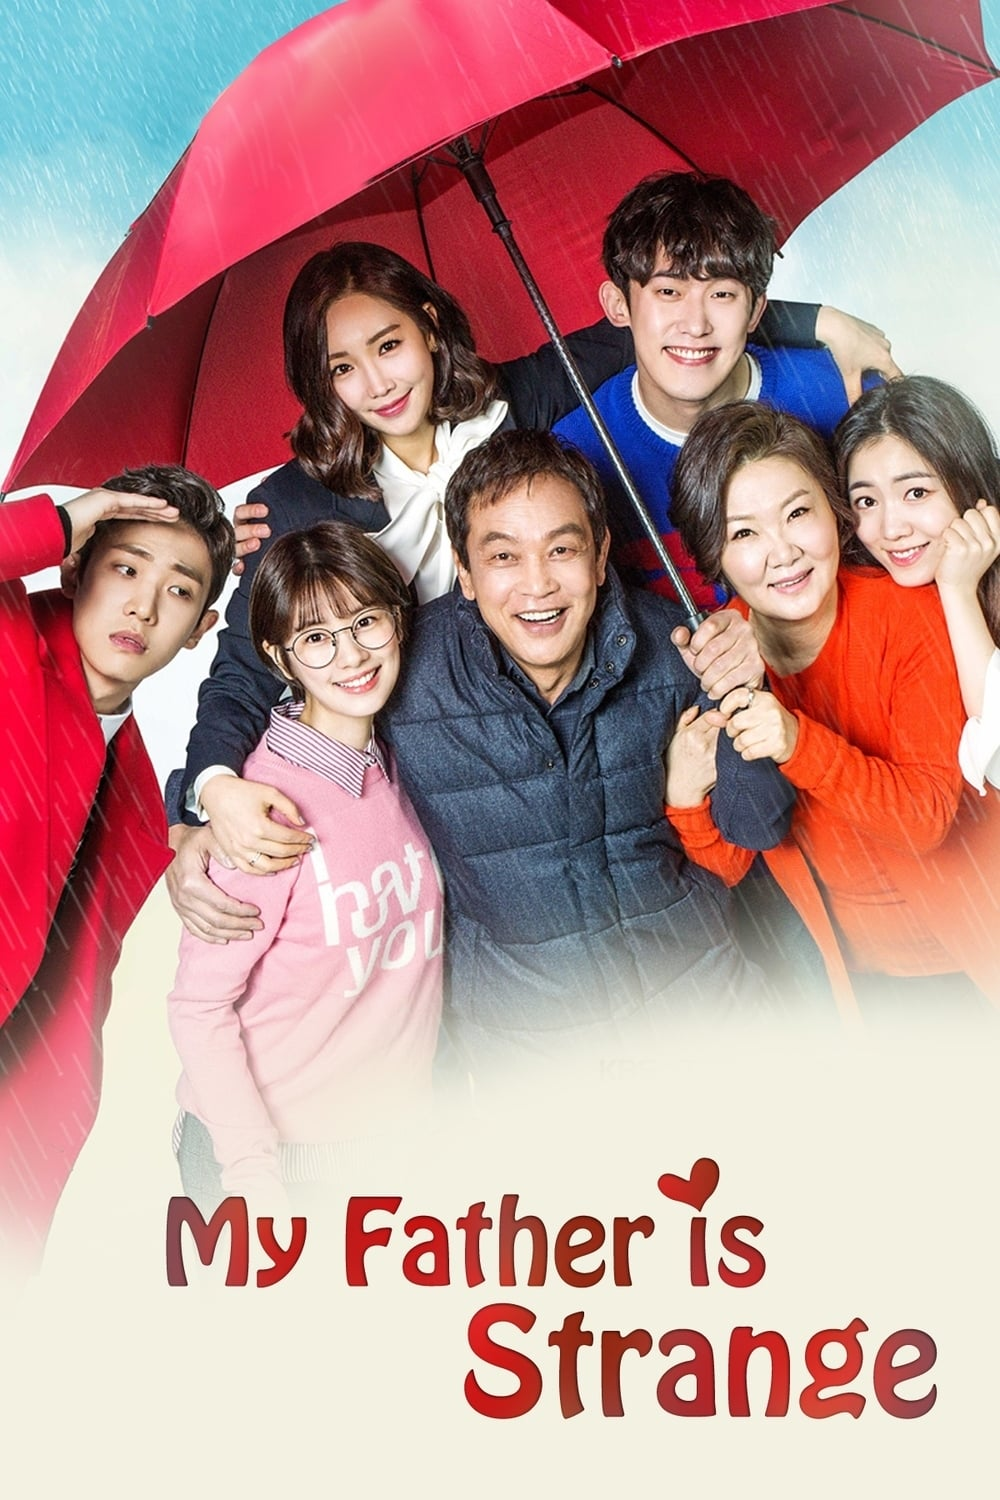 My Father is Strange (2017)